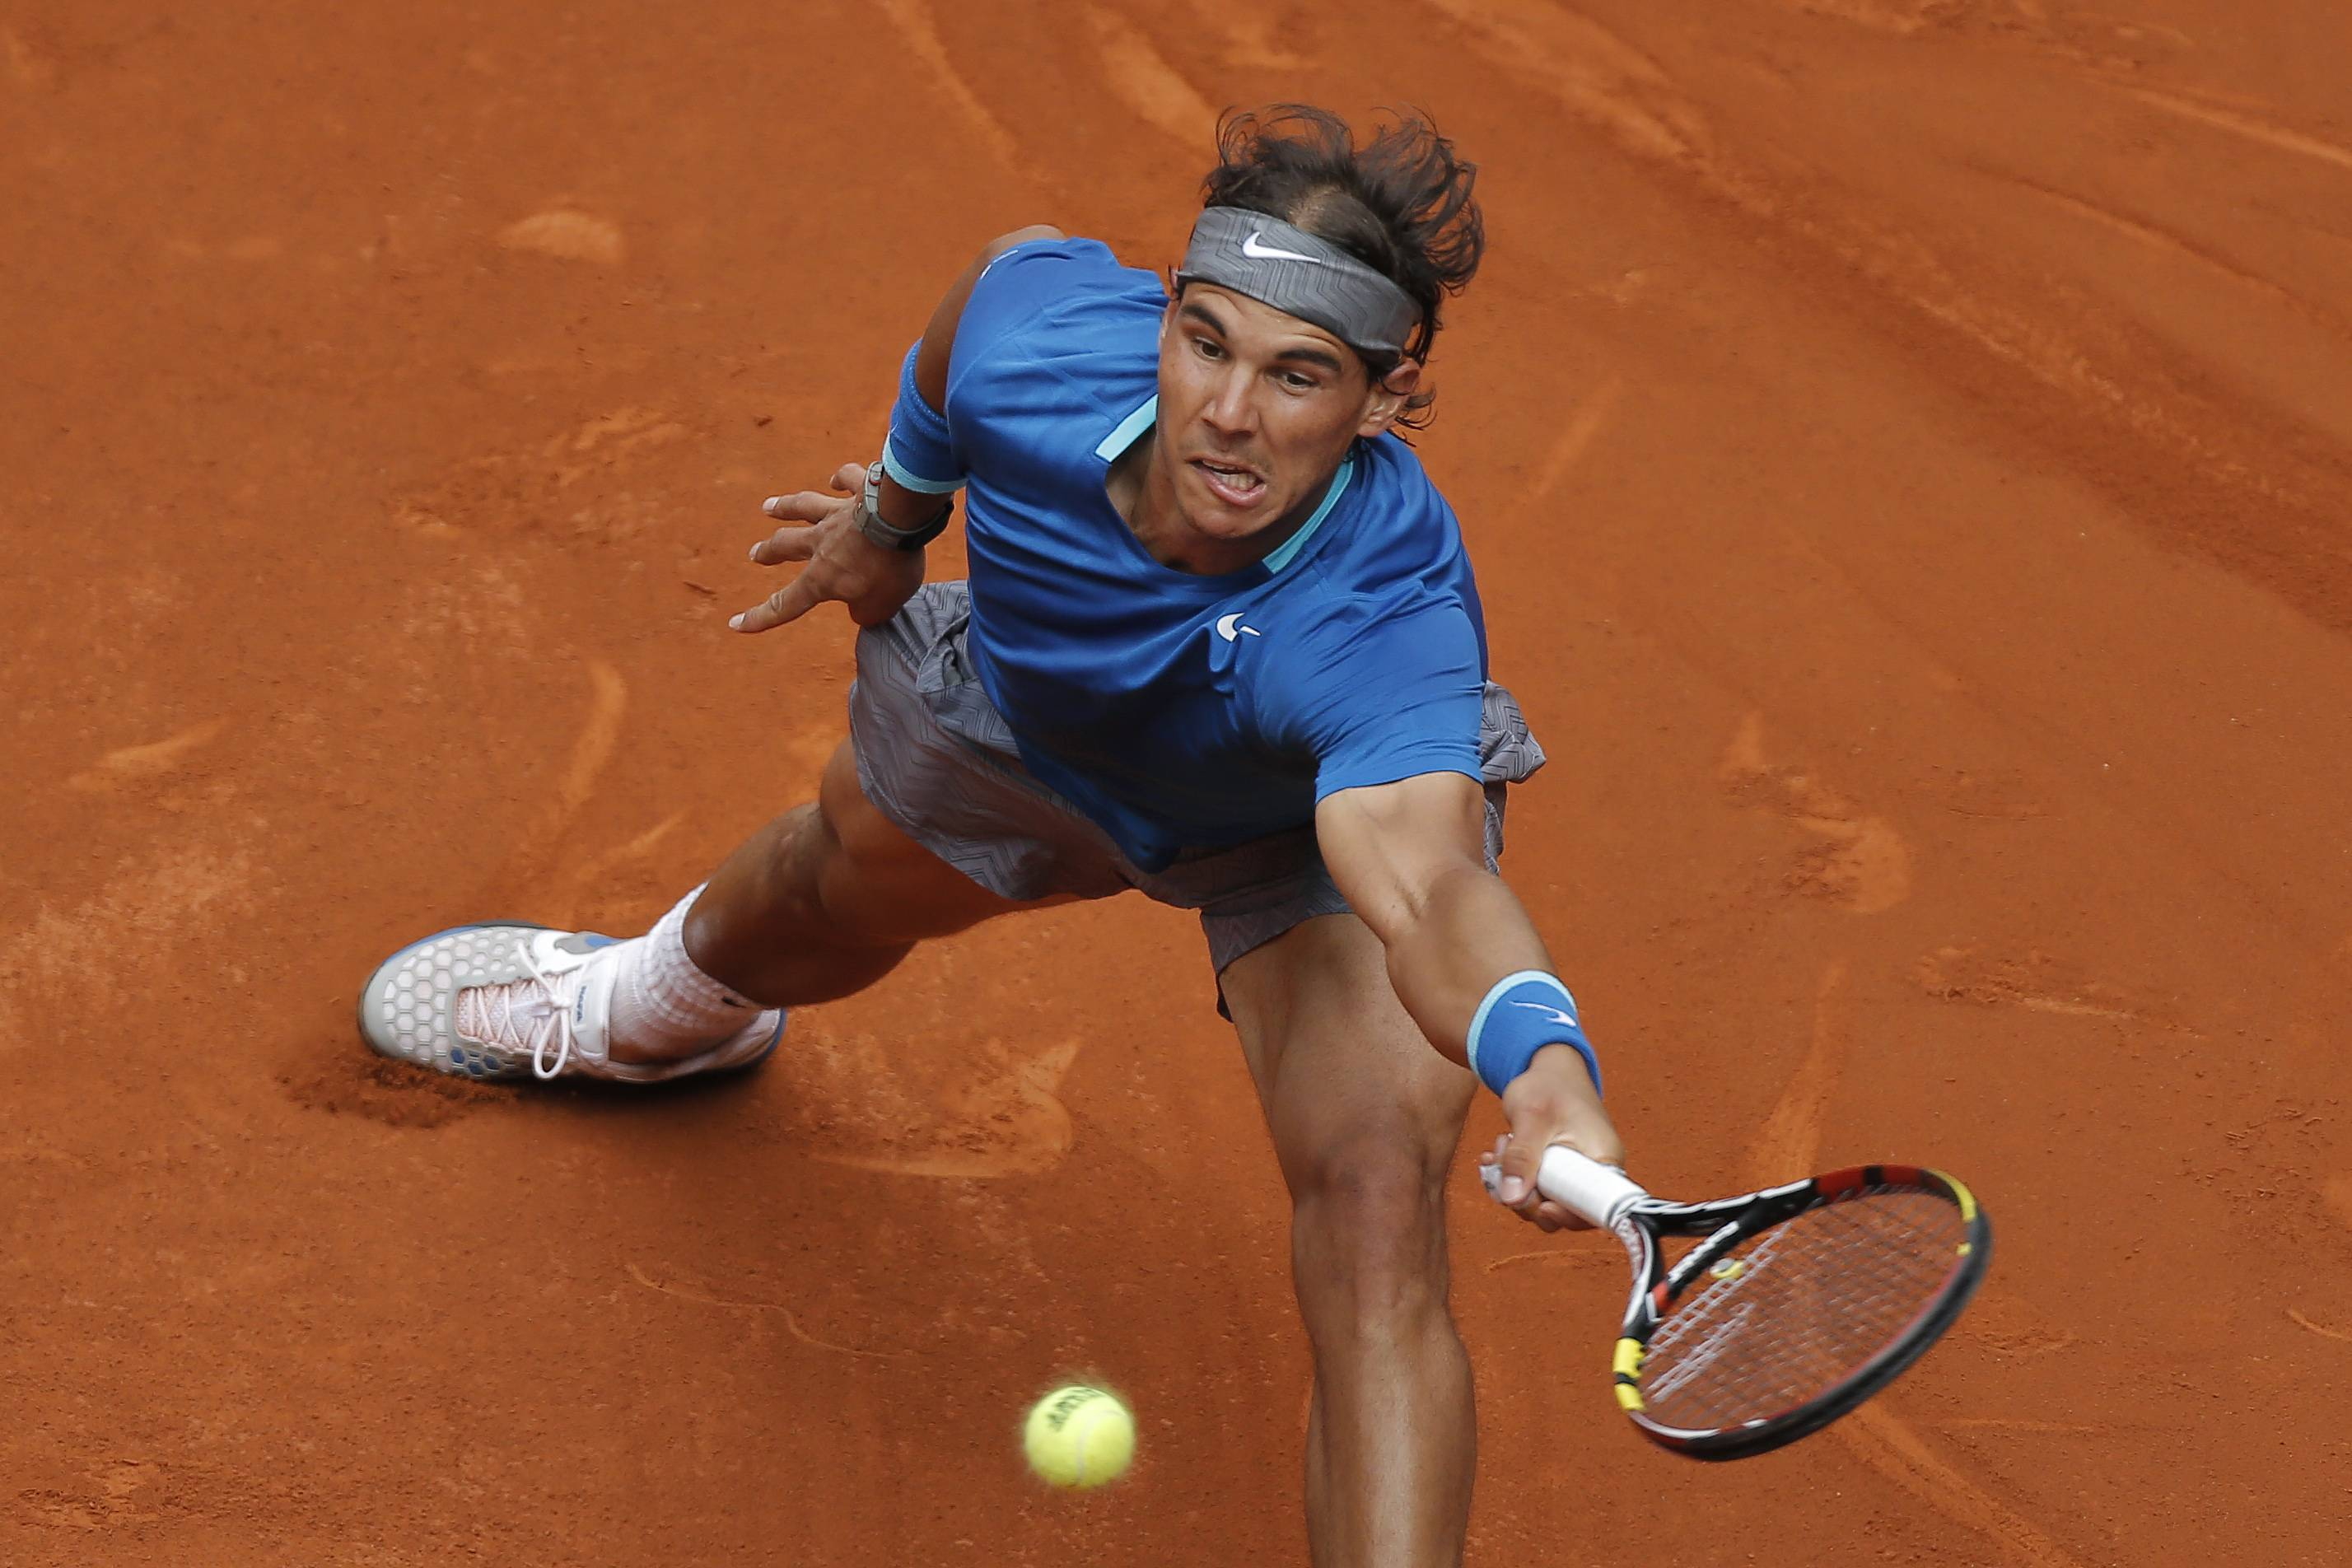 Rafael Nadal from Spain returns the ball during a Madrid Open tennis tournament match against Juan Monaco from Argentina, in Madrid, Spain, Wednesday, May 7, 2014.